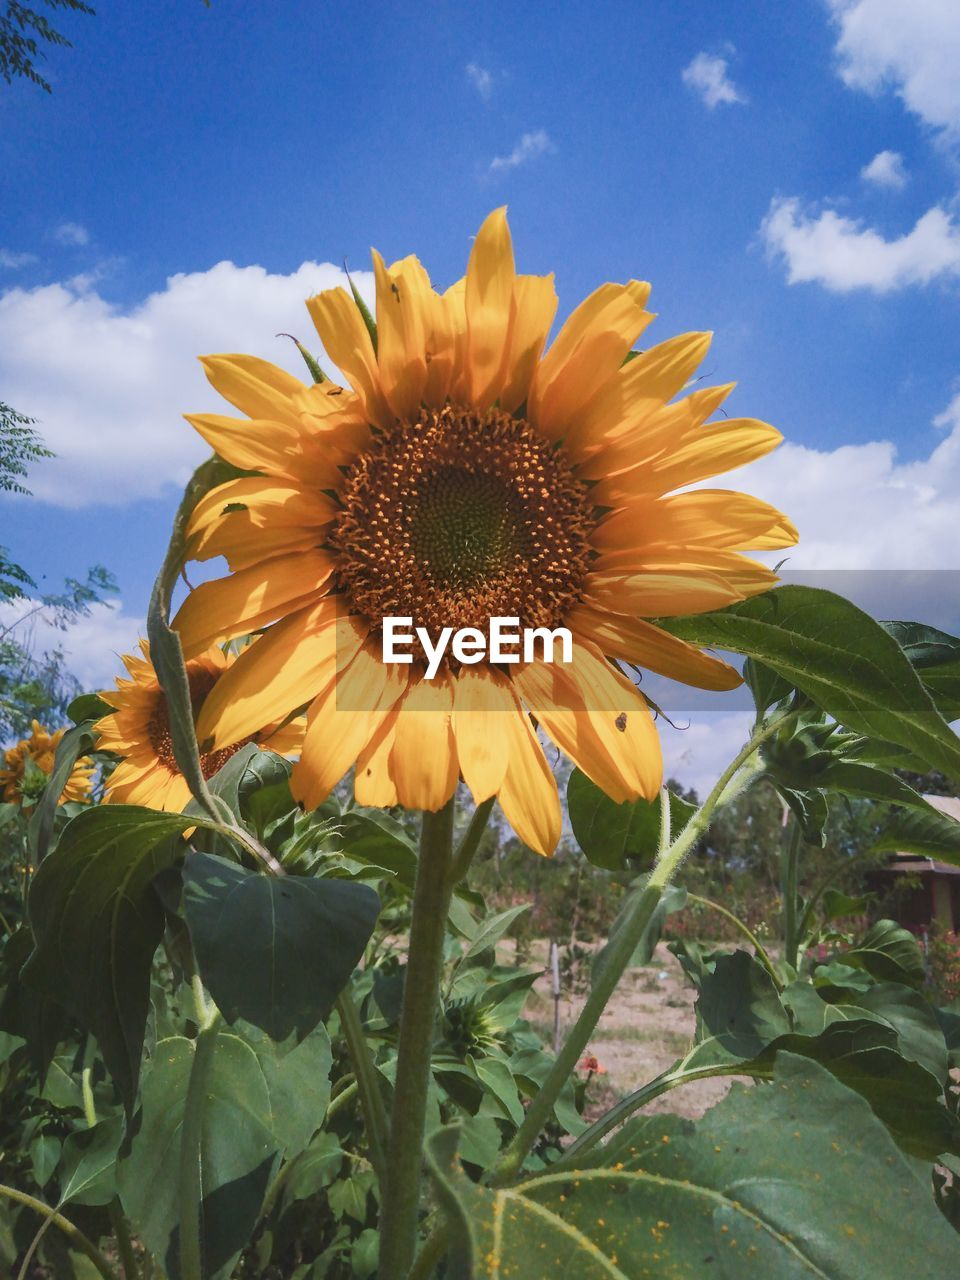 plant, flower, flowering plant, fragility, growth, freshness, petal, flower head, vulnerability, beauty in nature, inflorescence, sky, yellow, nature, plant part, leaf, close-up, pollen, sunflower, cloud - sky, no people, outdoors